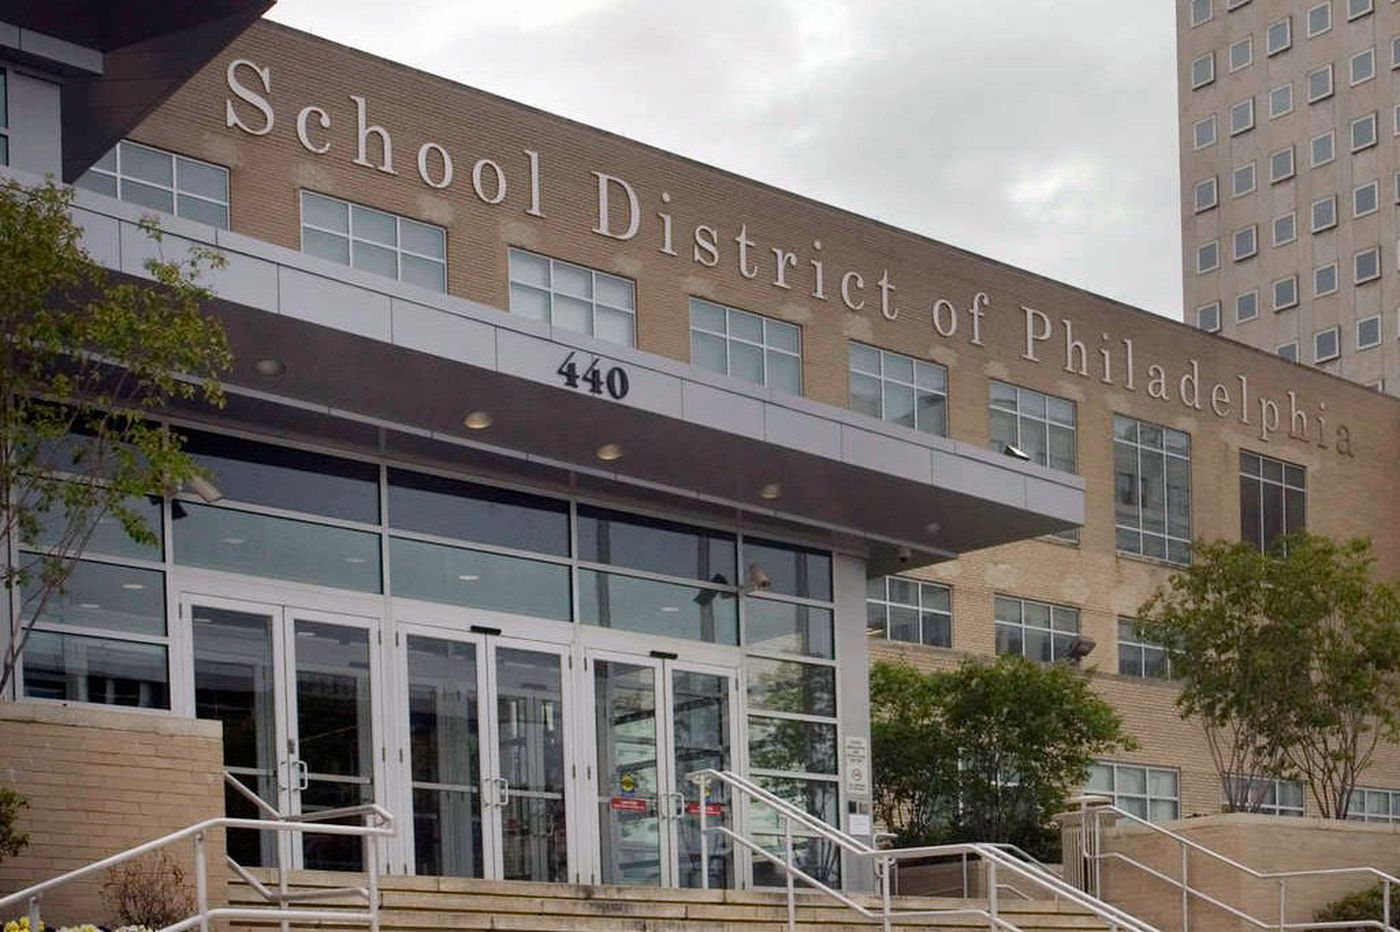 Feds: Fake tutor defrauded Philly schools of nearly $100K